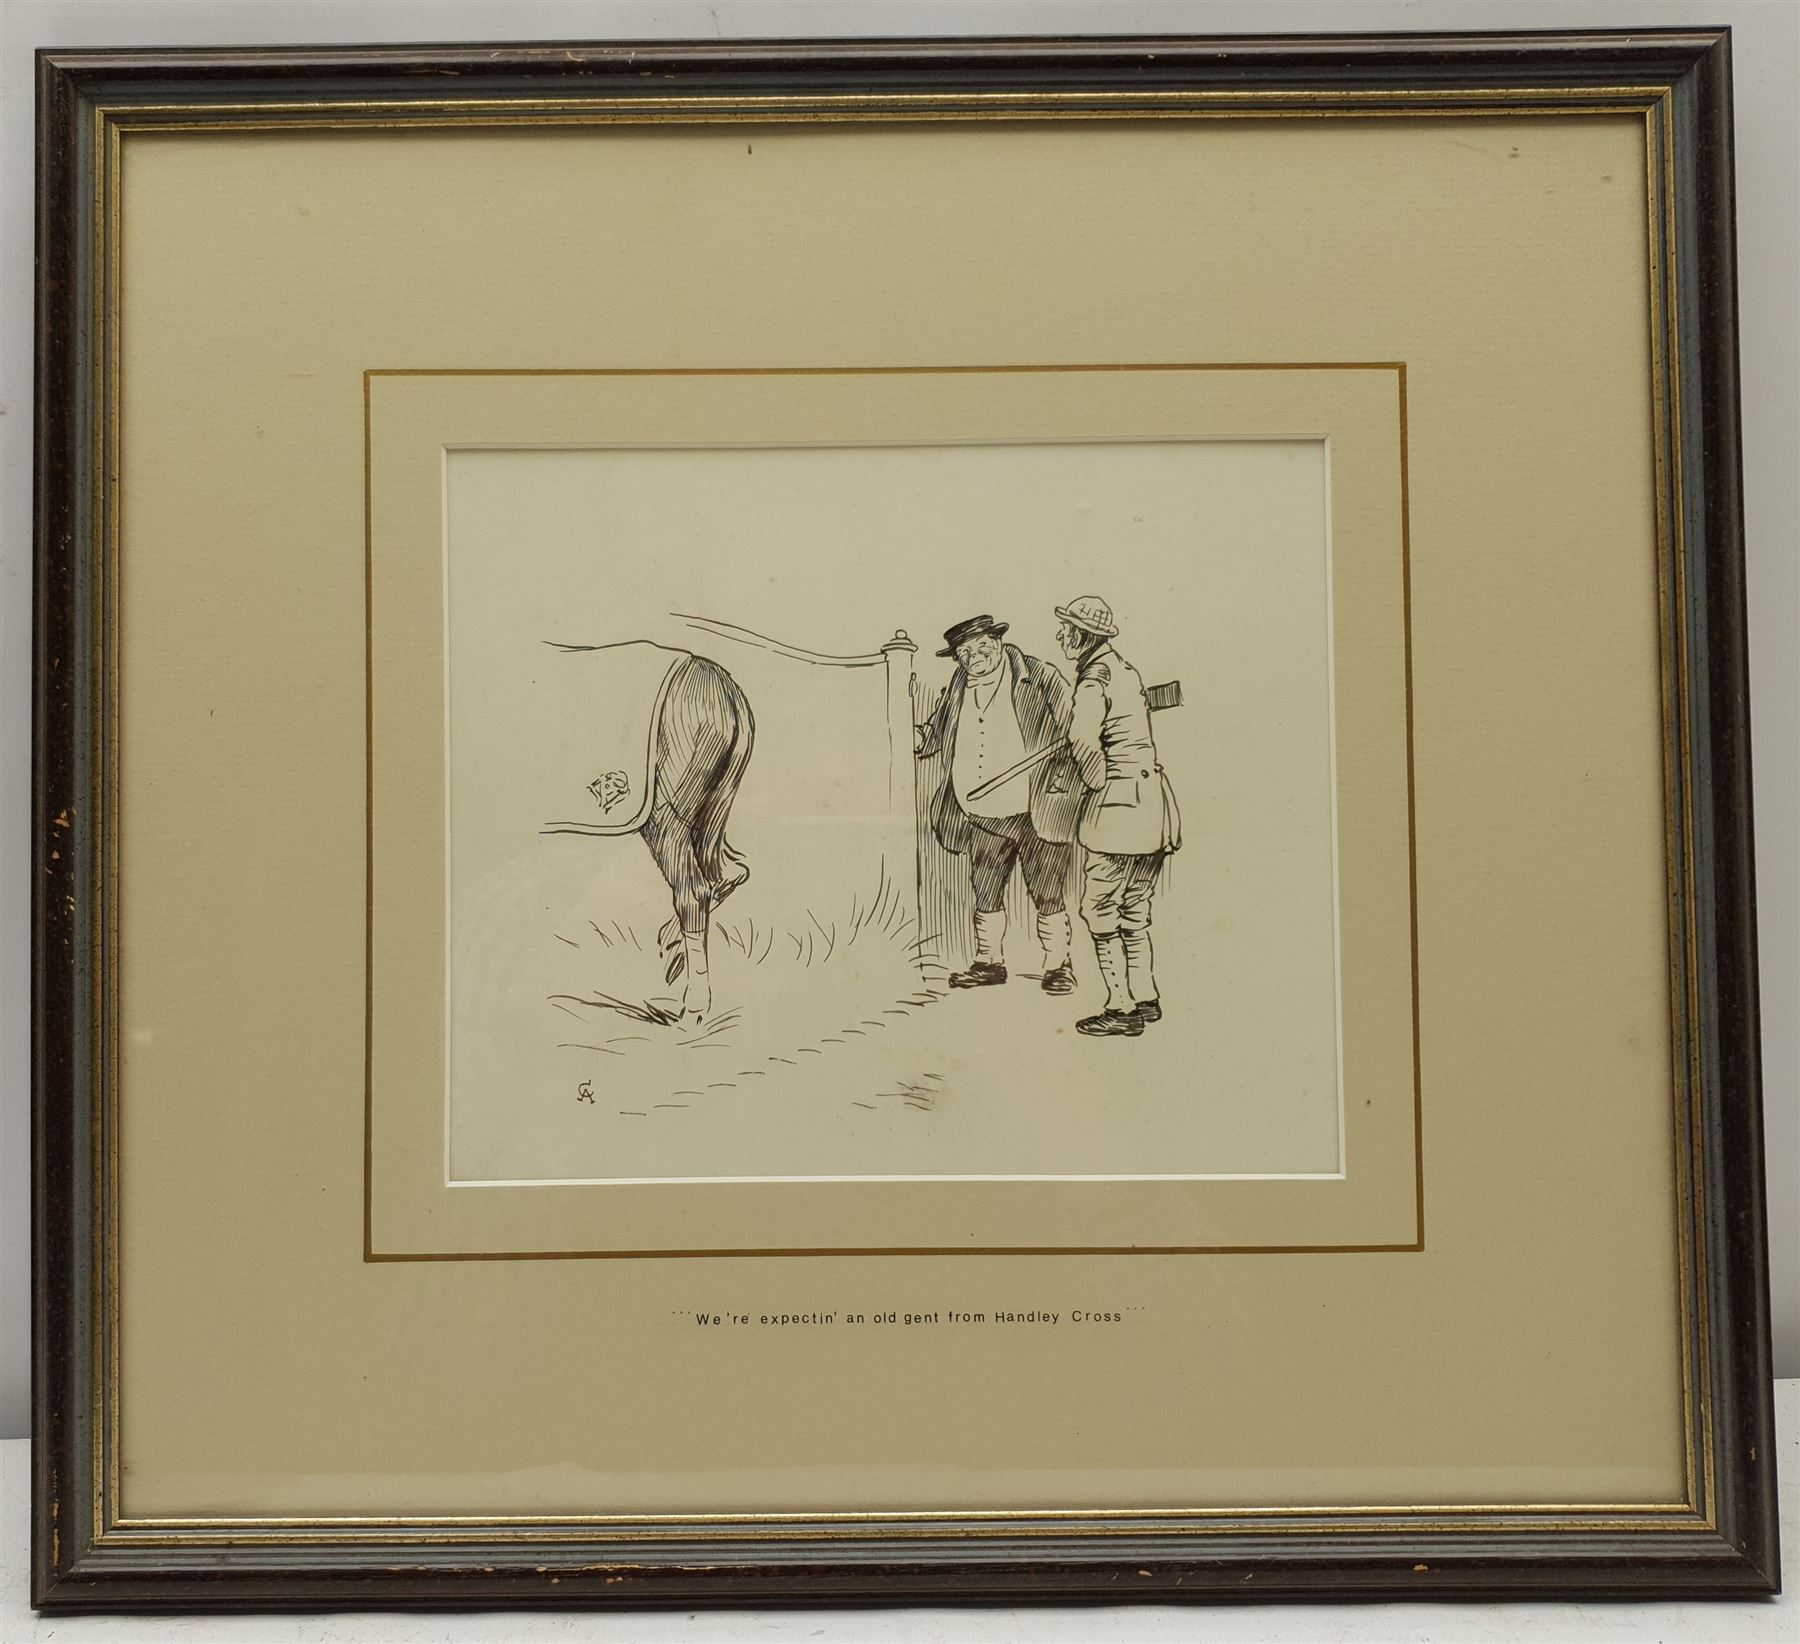 Cecil Aldin (British 1870-1935): 'We're Expectin' an Old Gent from Handley Cross' - Image 2 of 2